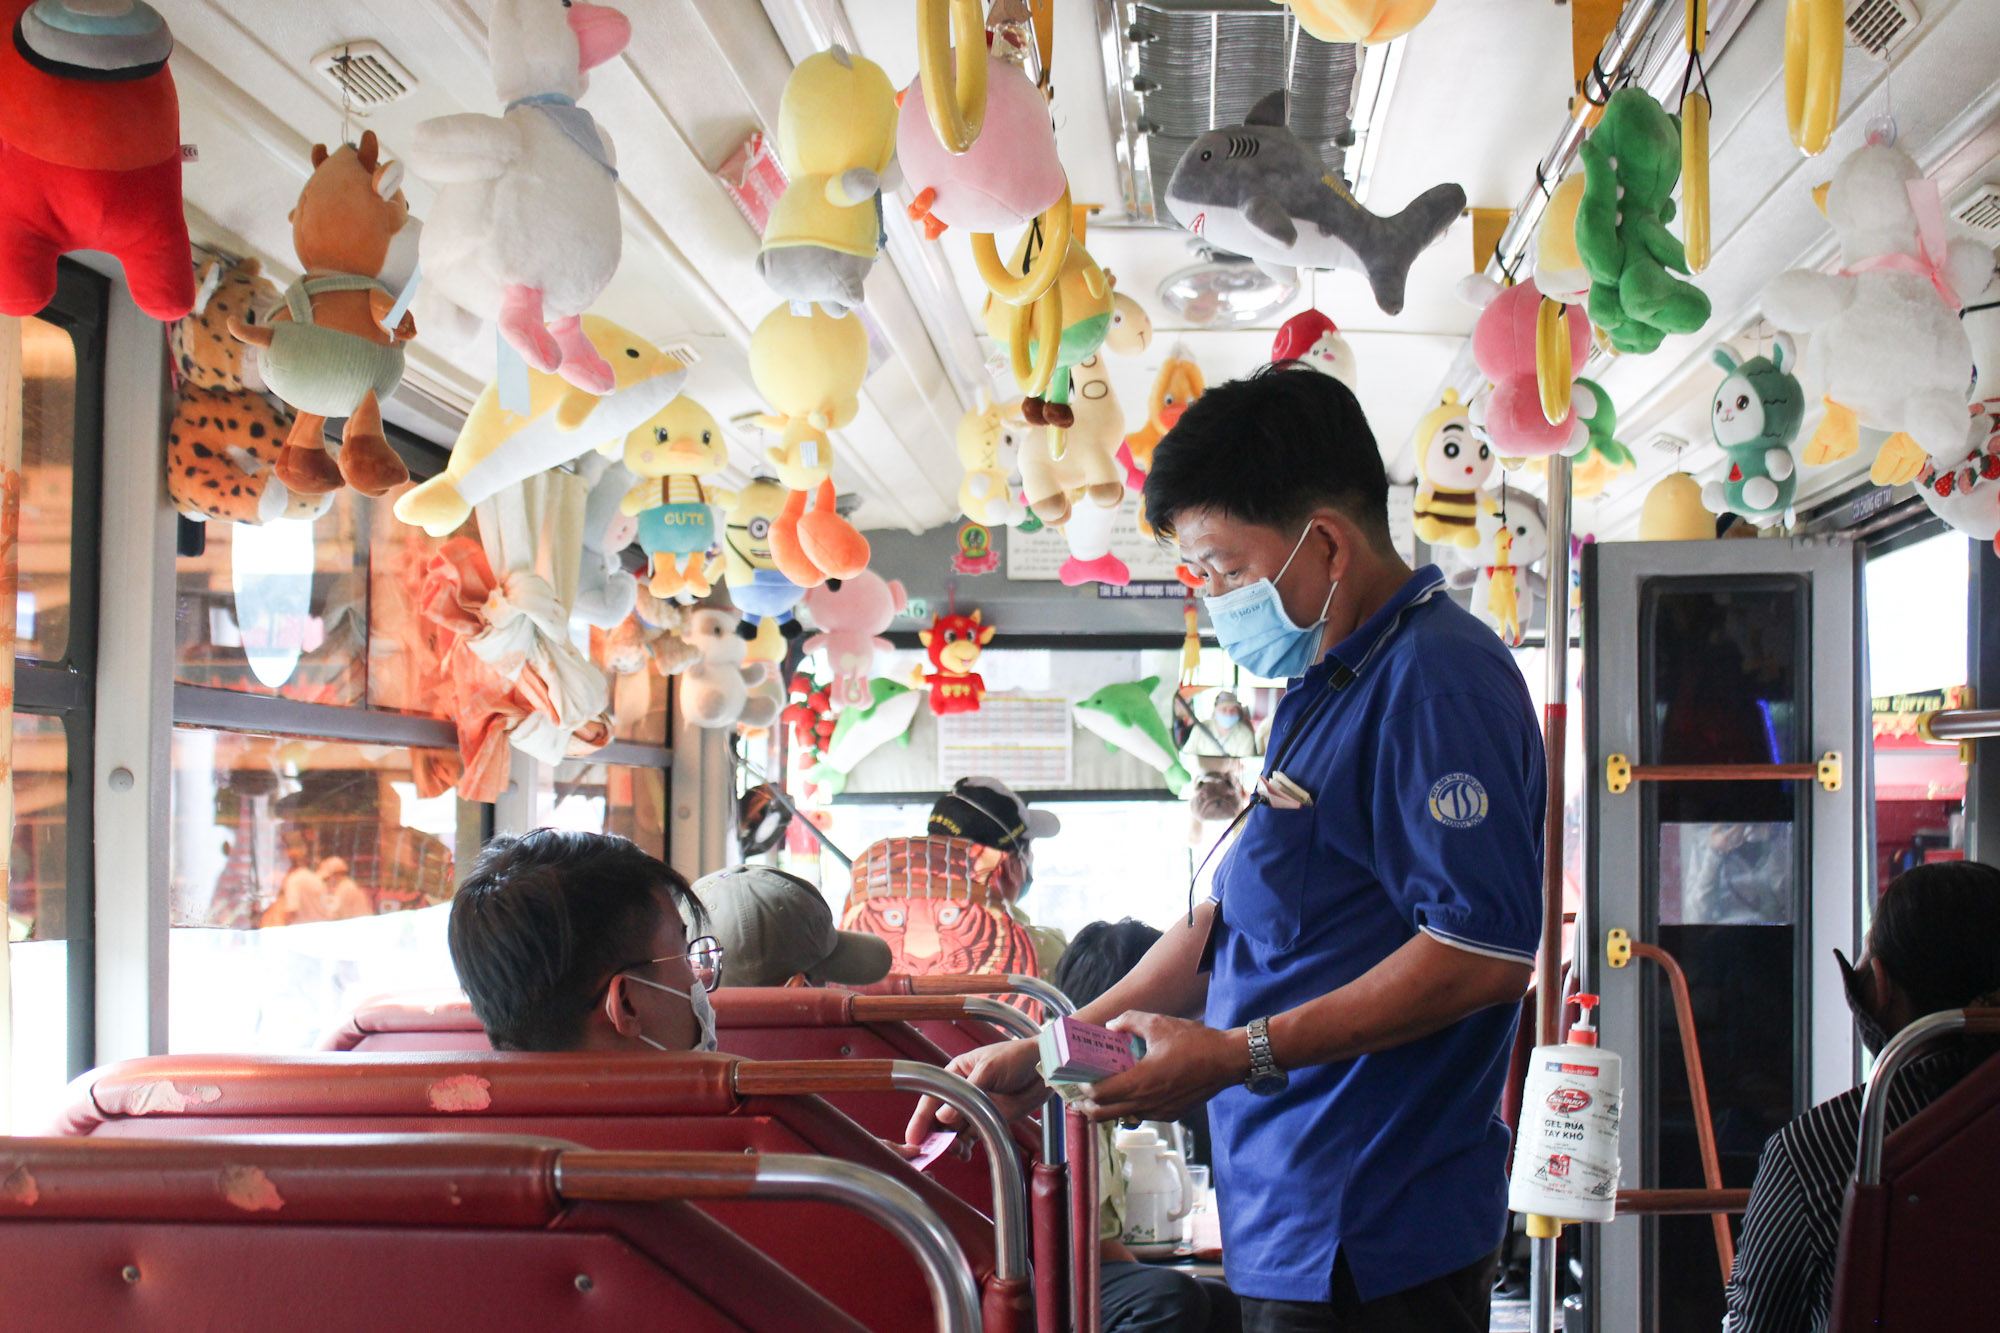 Stuff animals are dangling inside the bus. Photo by VnExpress/ Diep Phan.